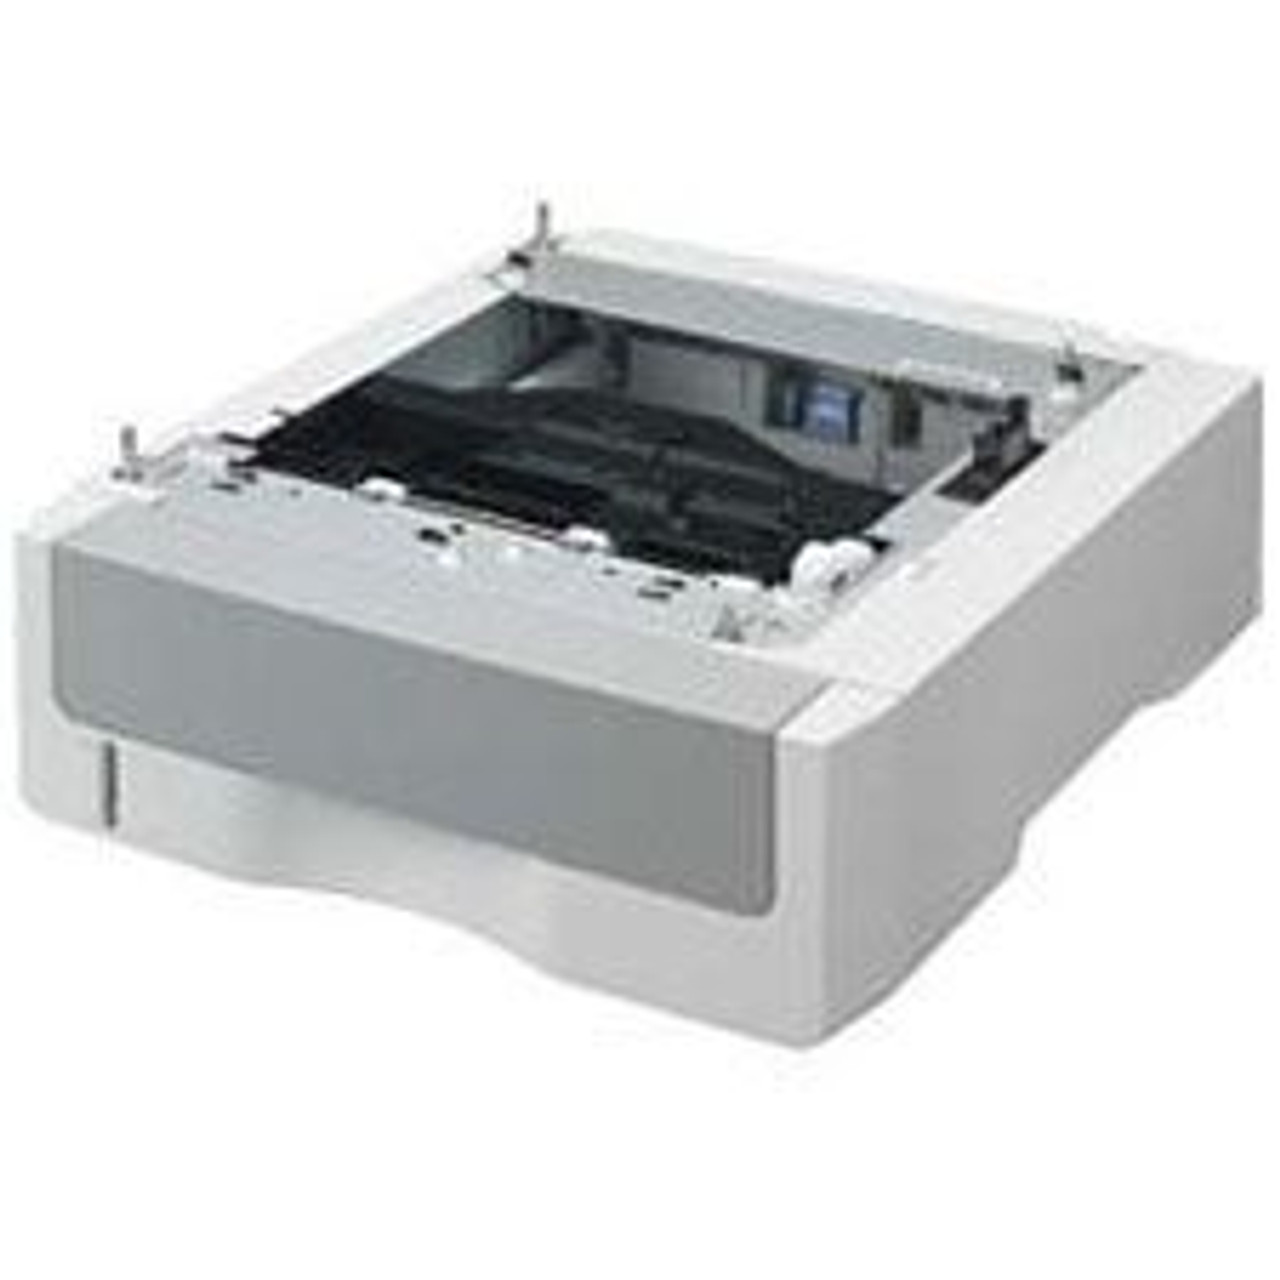 Image for Canon PF93 500 Sheet Paper Feed for LBP-5300 (PF-93) CX Computer Superstore